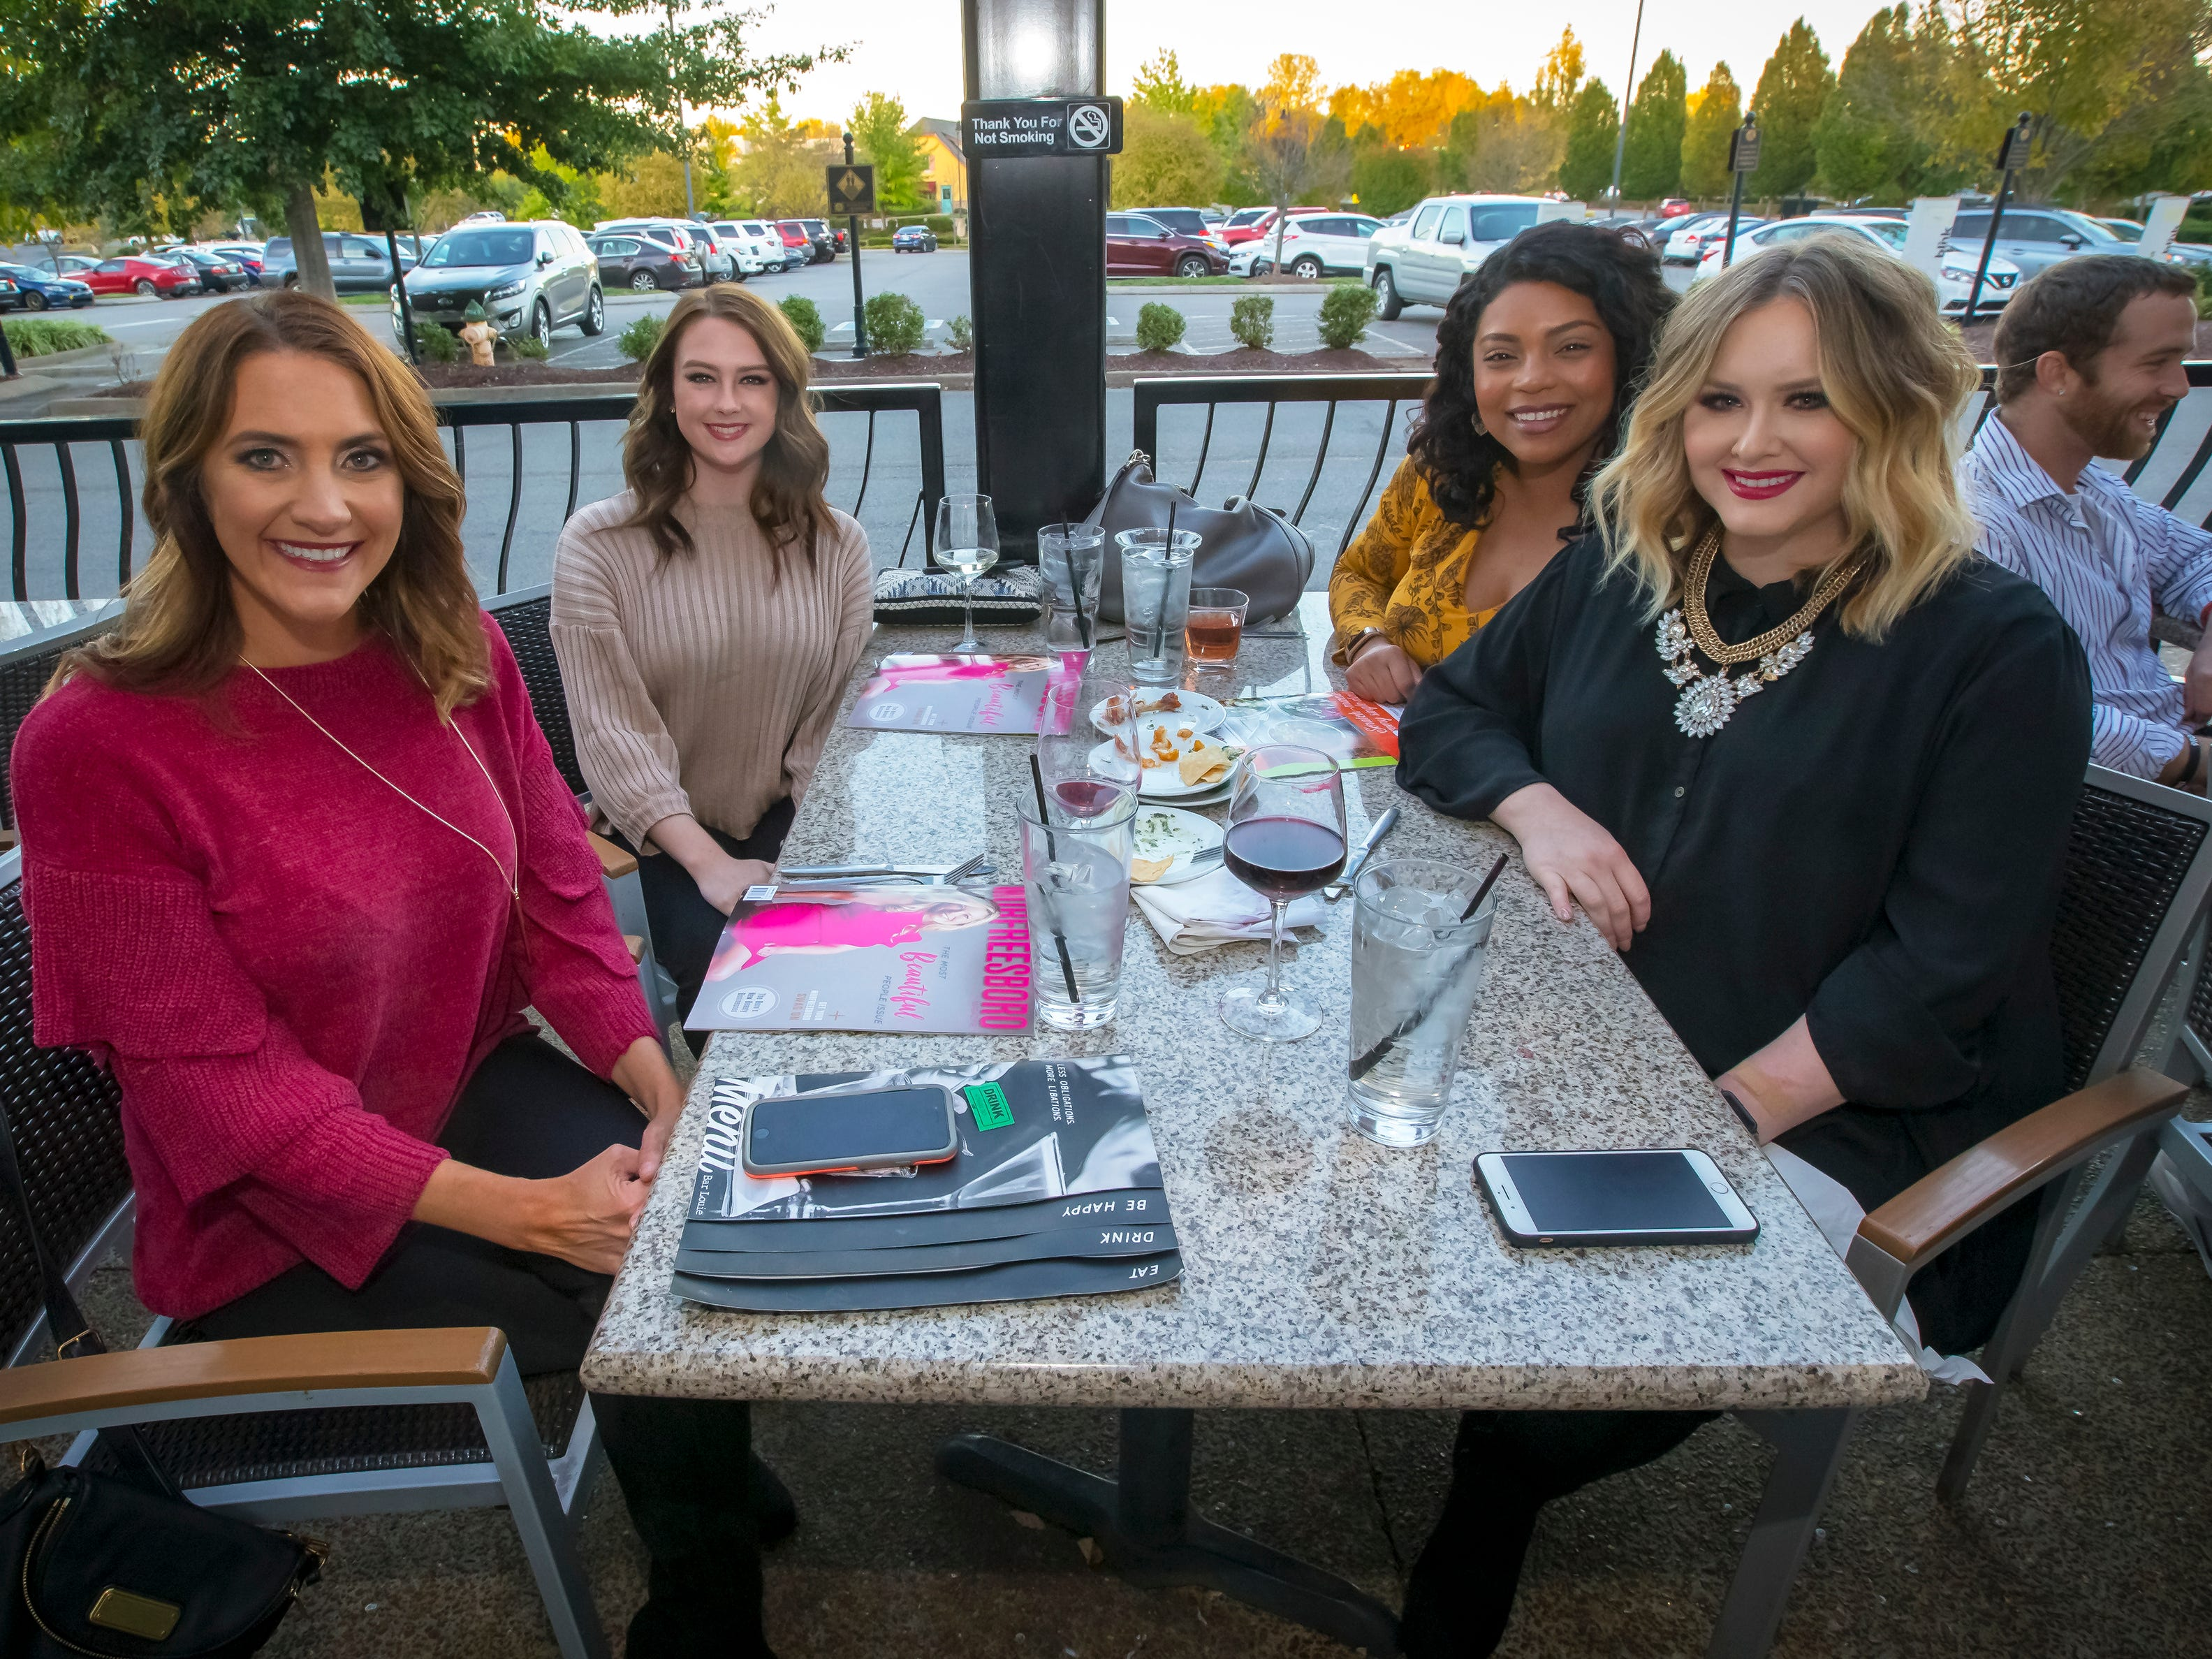 Jessica Shields, Brena Pulley, Amy McElroy and Krystal Dickerson at the Murfreesboro Magazine Most Beautiful People event held at Bar Louie.